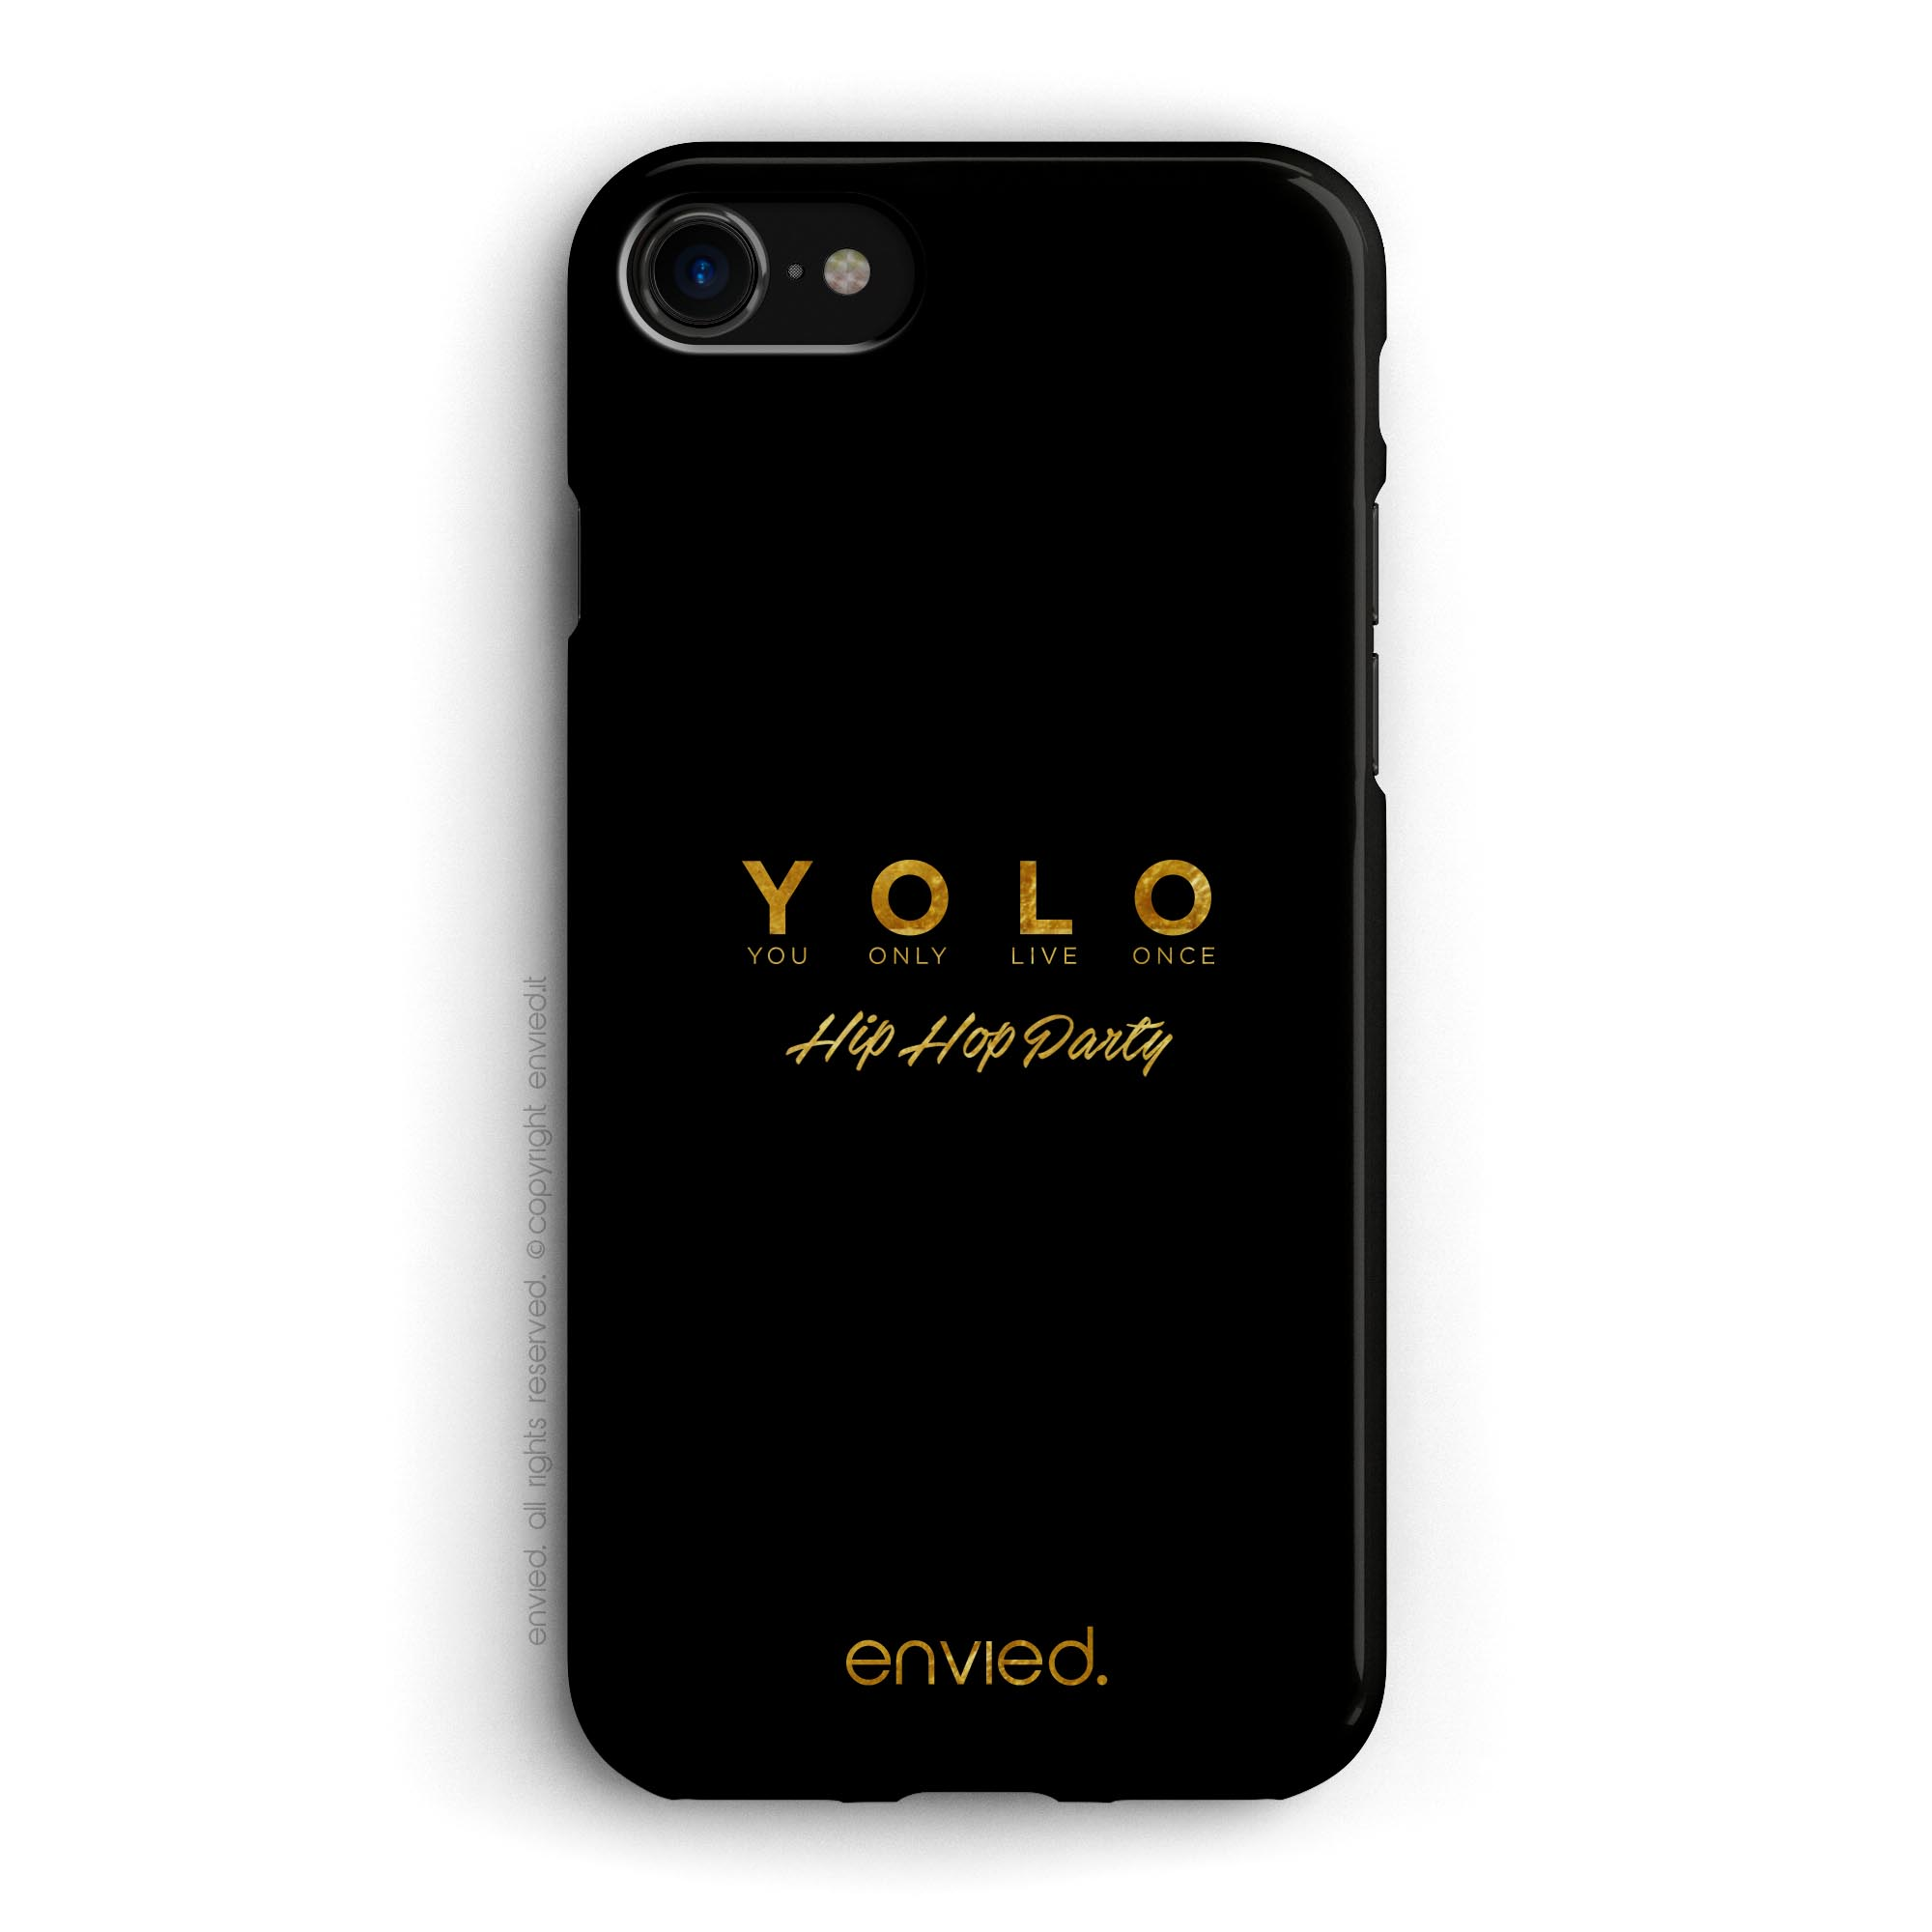 Cover Yolo In Marmo Bianco A Mosaico Envied Enviedcases